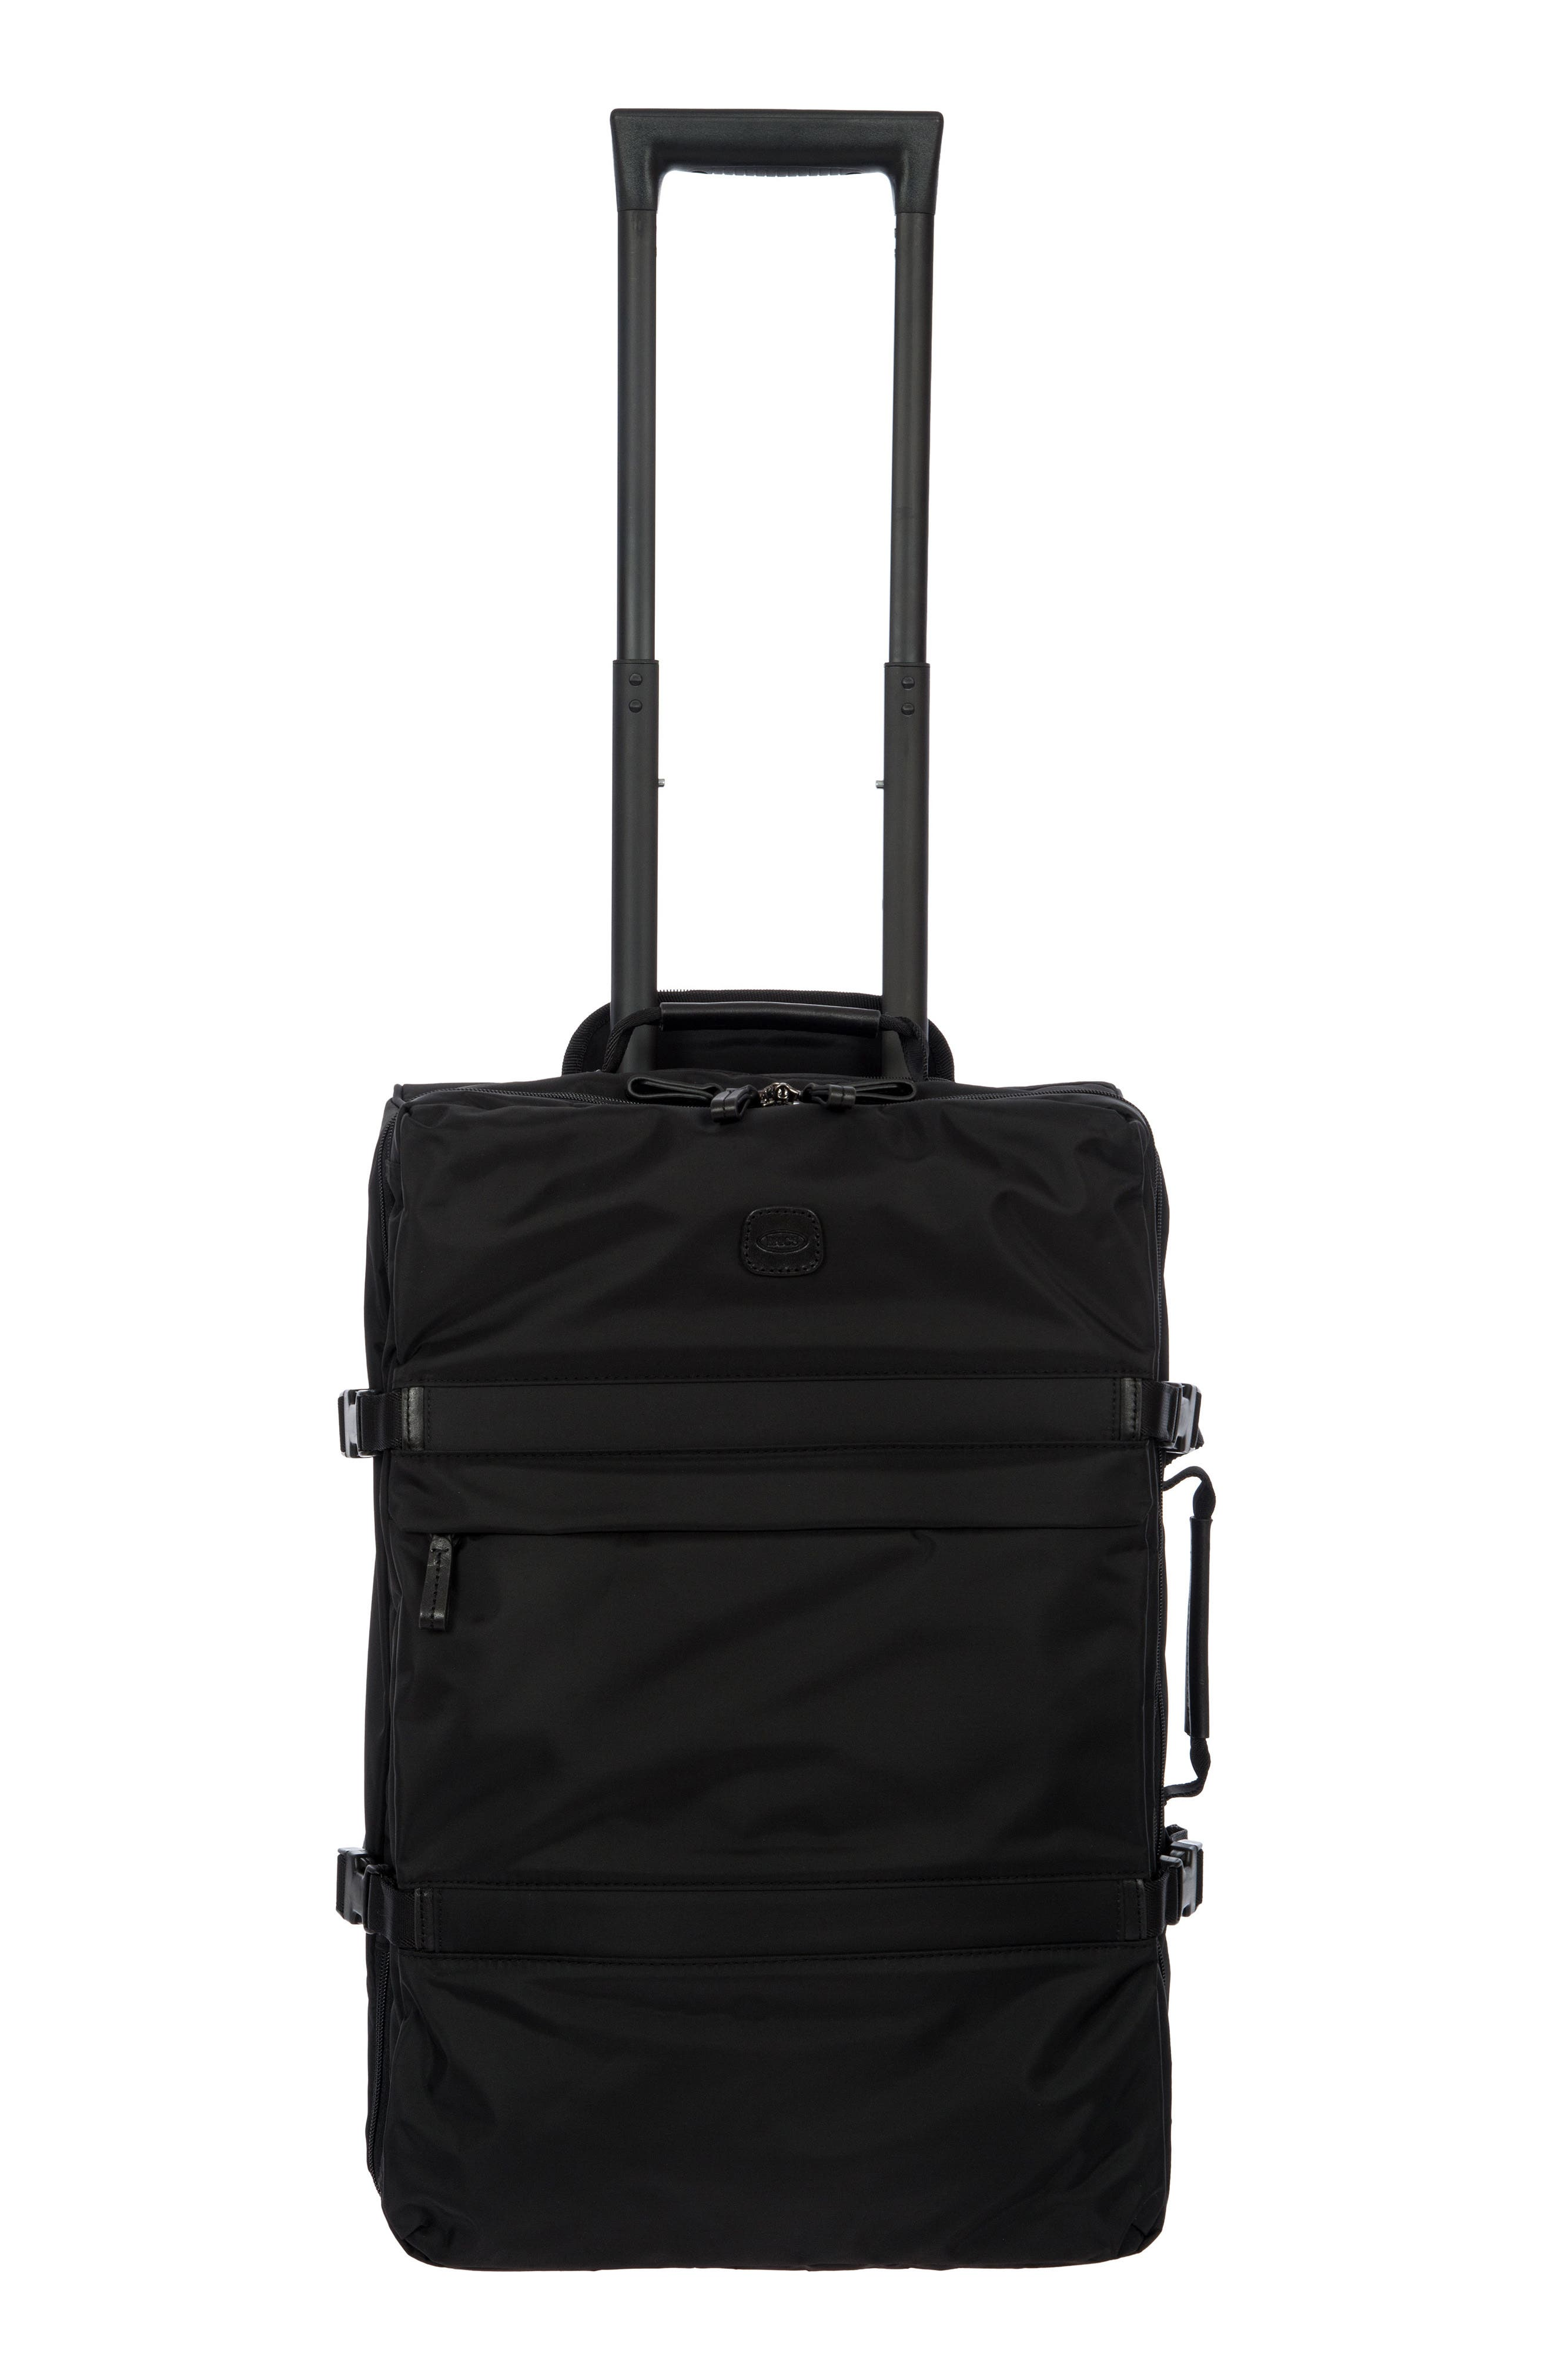 1a6797bd0 Bric's Carry-On Bags and Luggage   Nordstrom